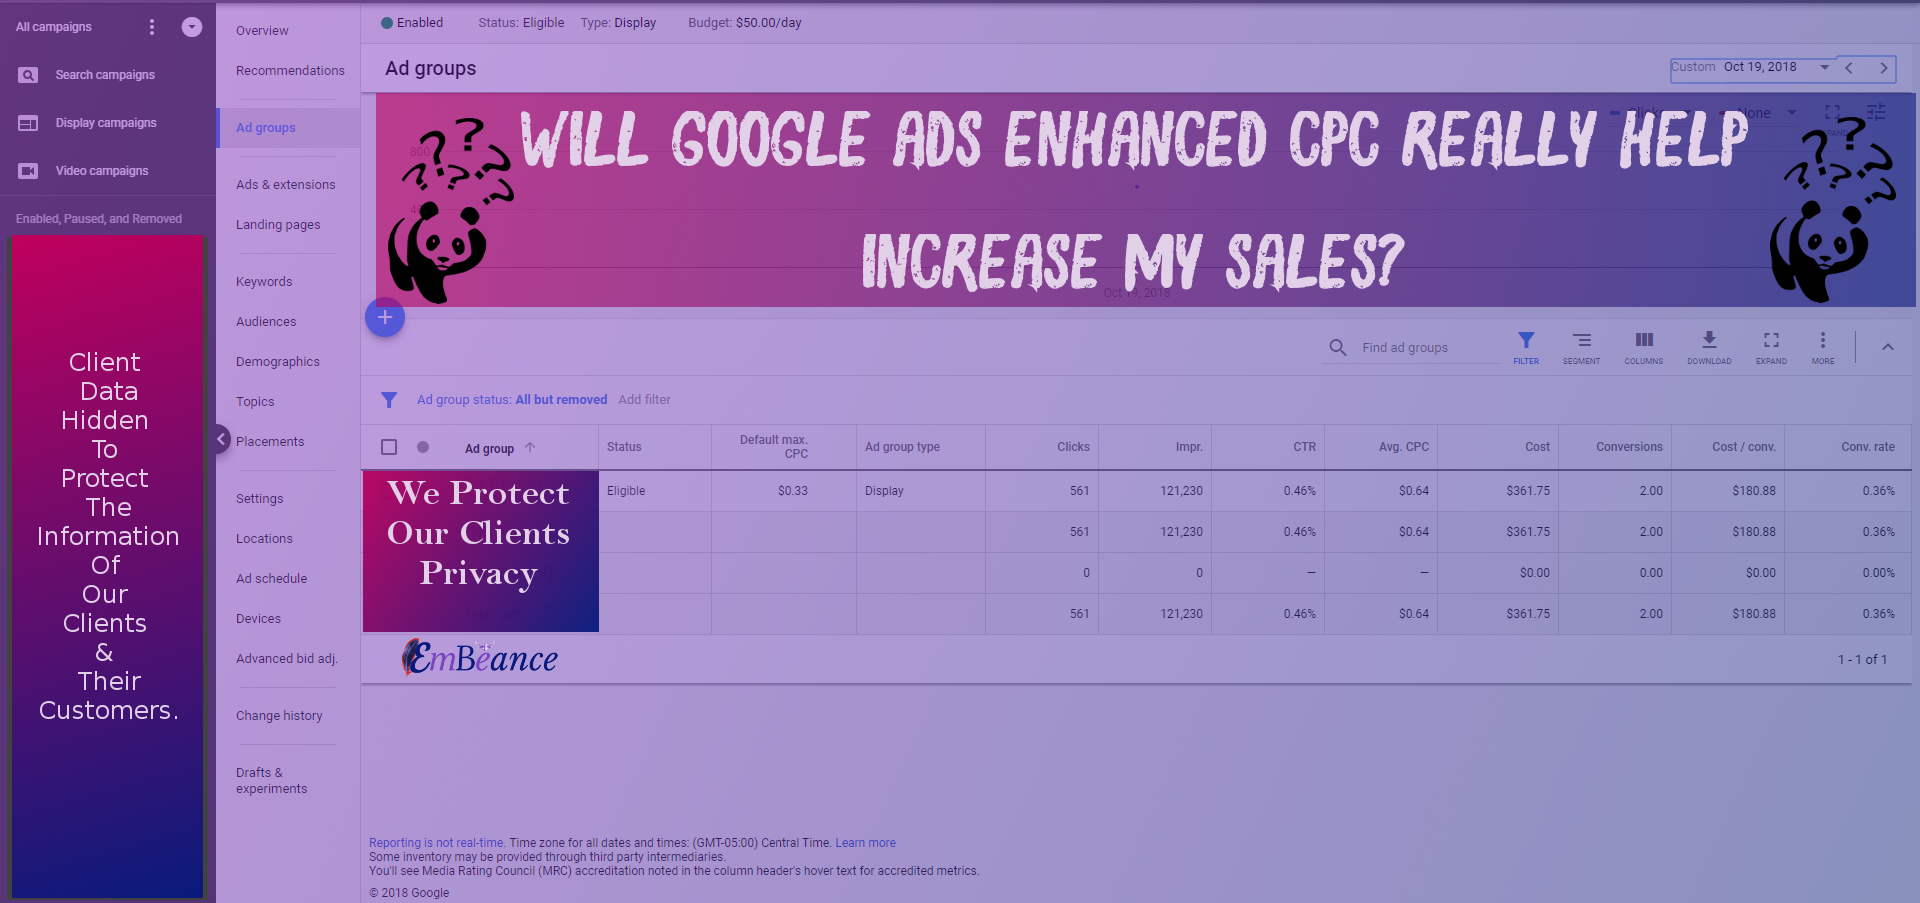 Adwords Enhanced CPC Display Campaign Results.png